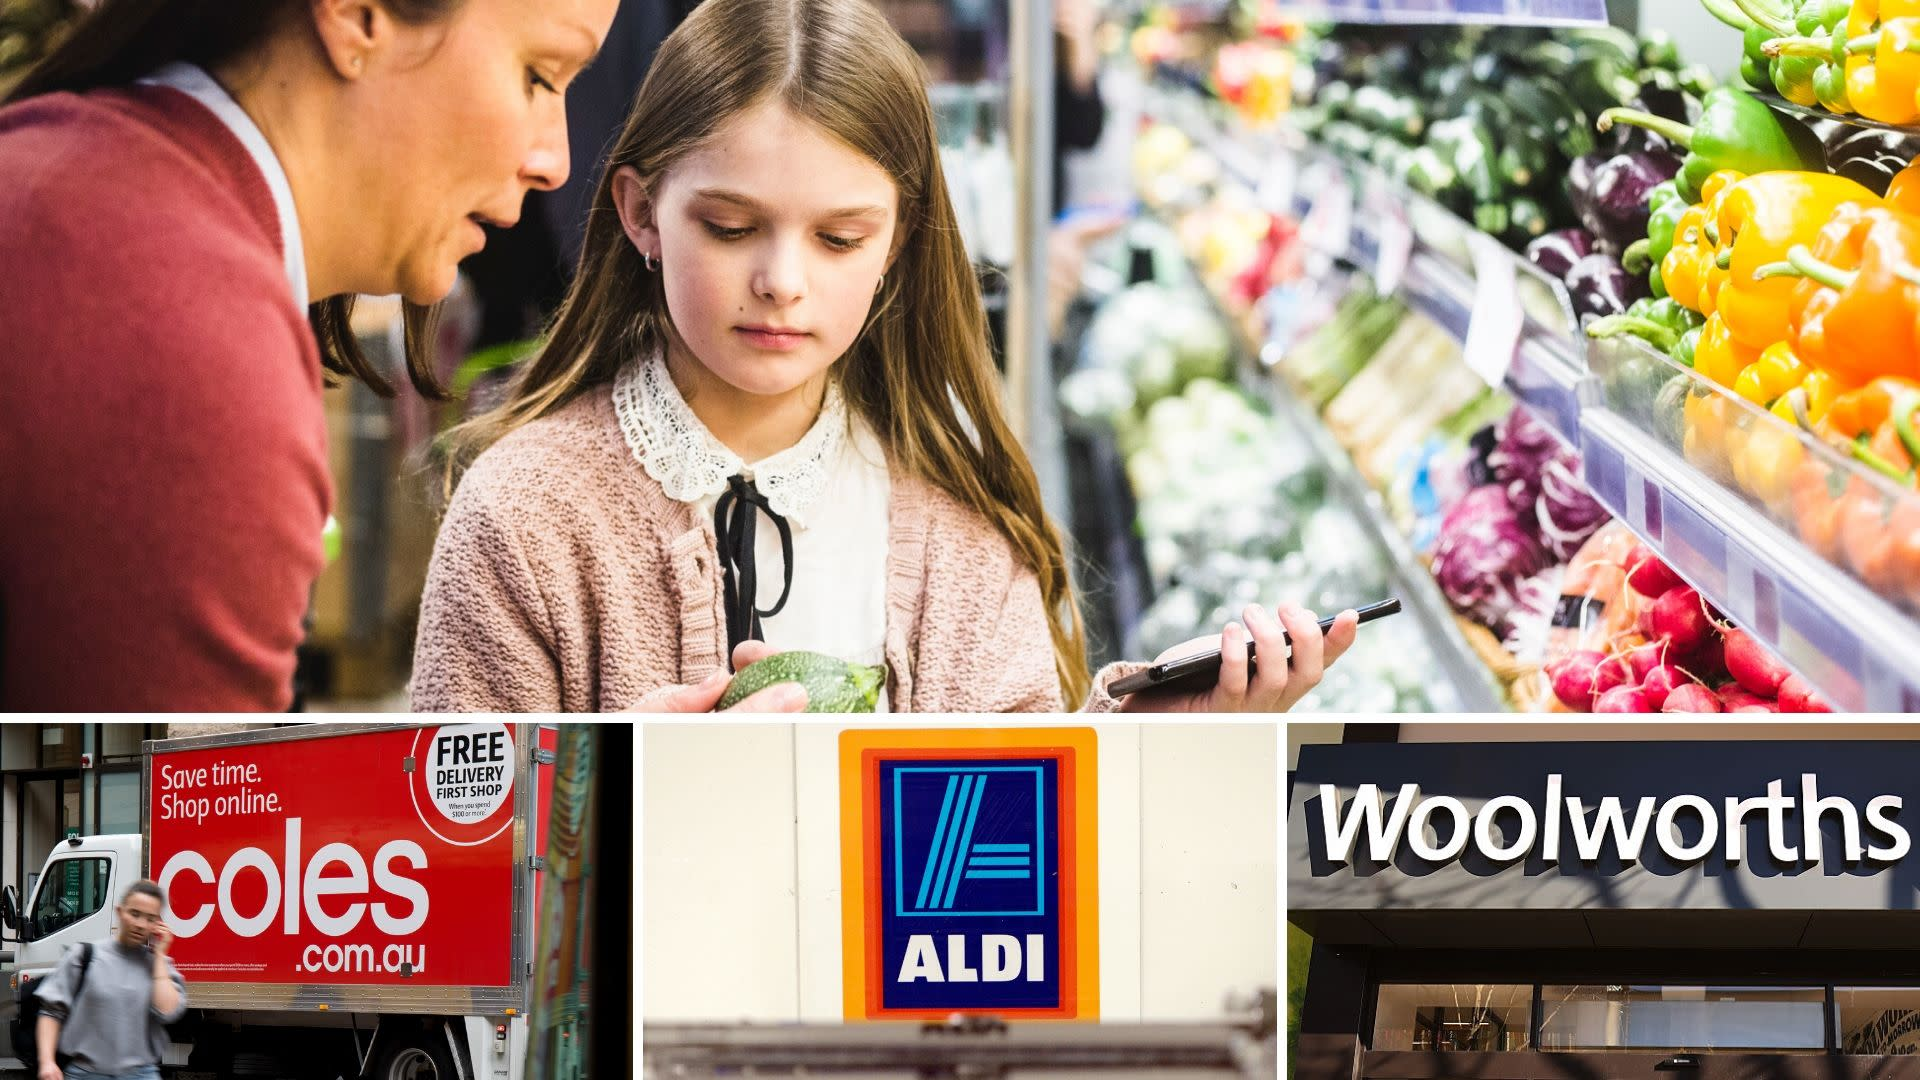 Don't fall for this Aldi rip-off